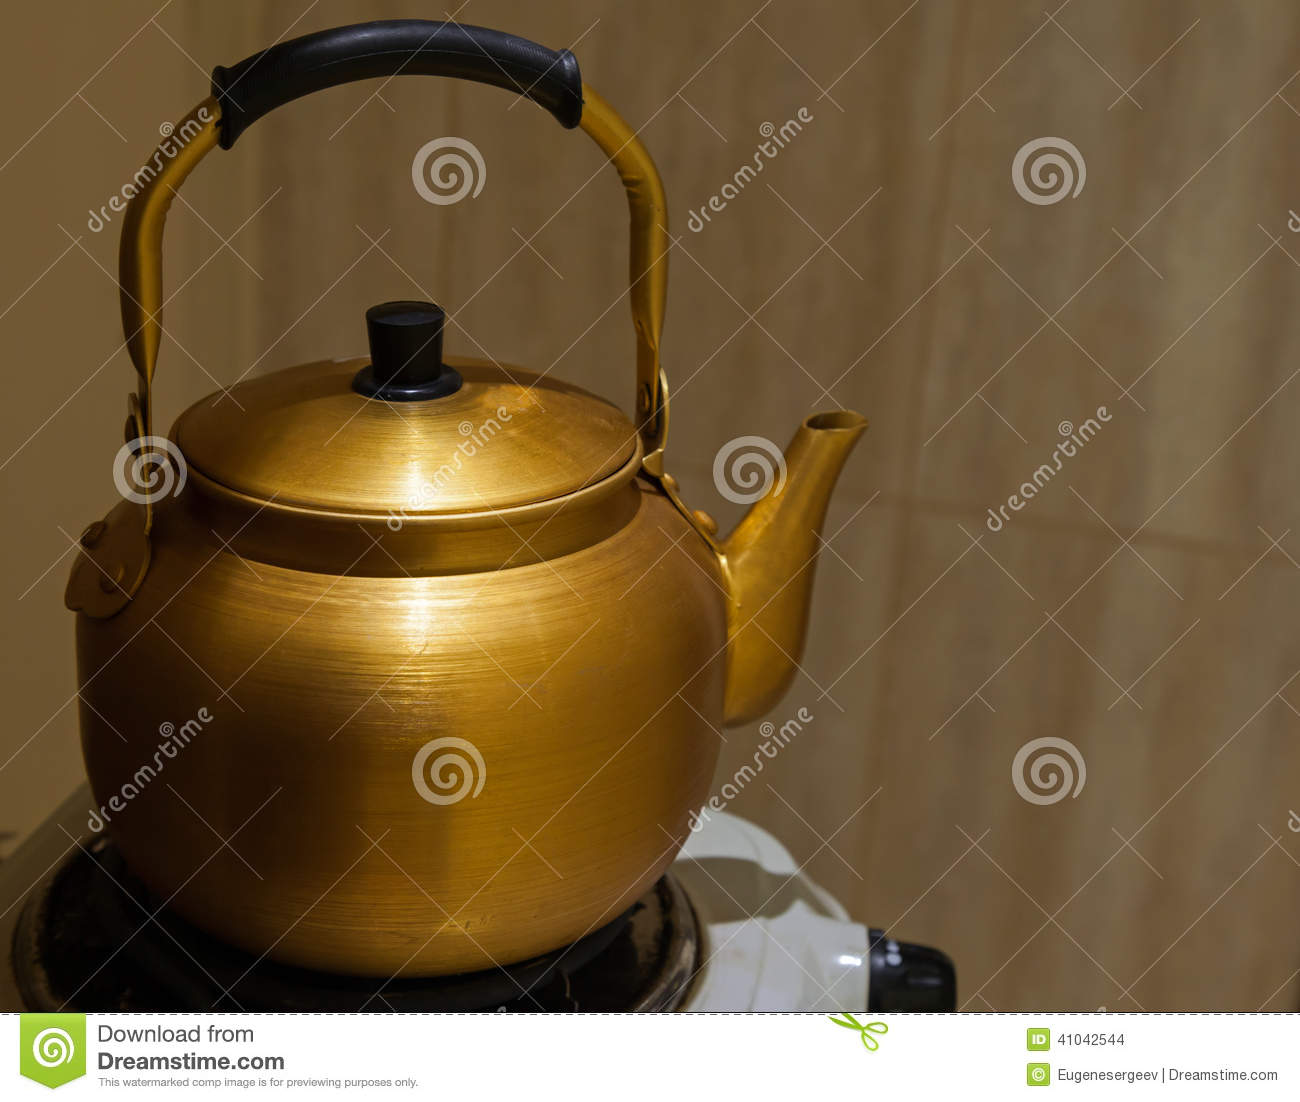 Old Yellow Metal Teapot On The Stove Stock Photo - Image: 41042544